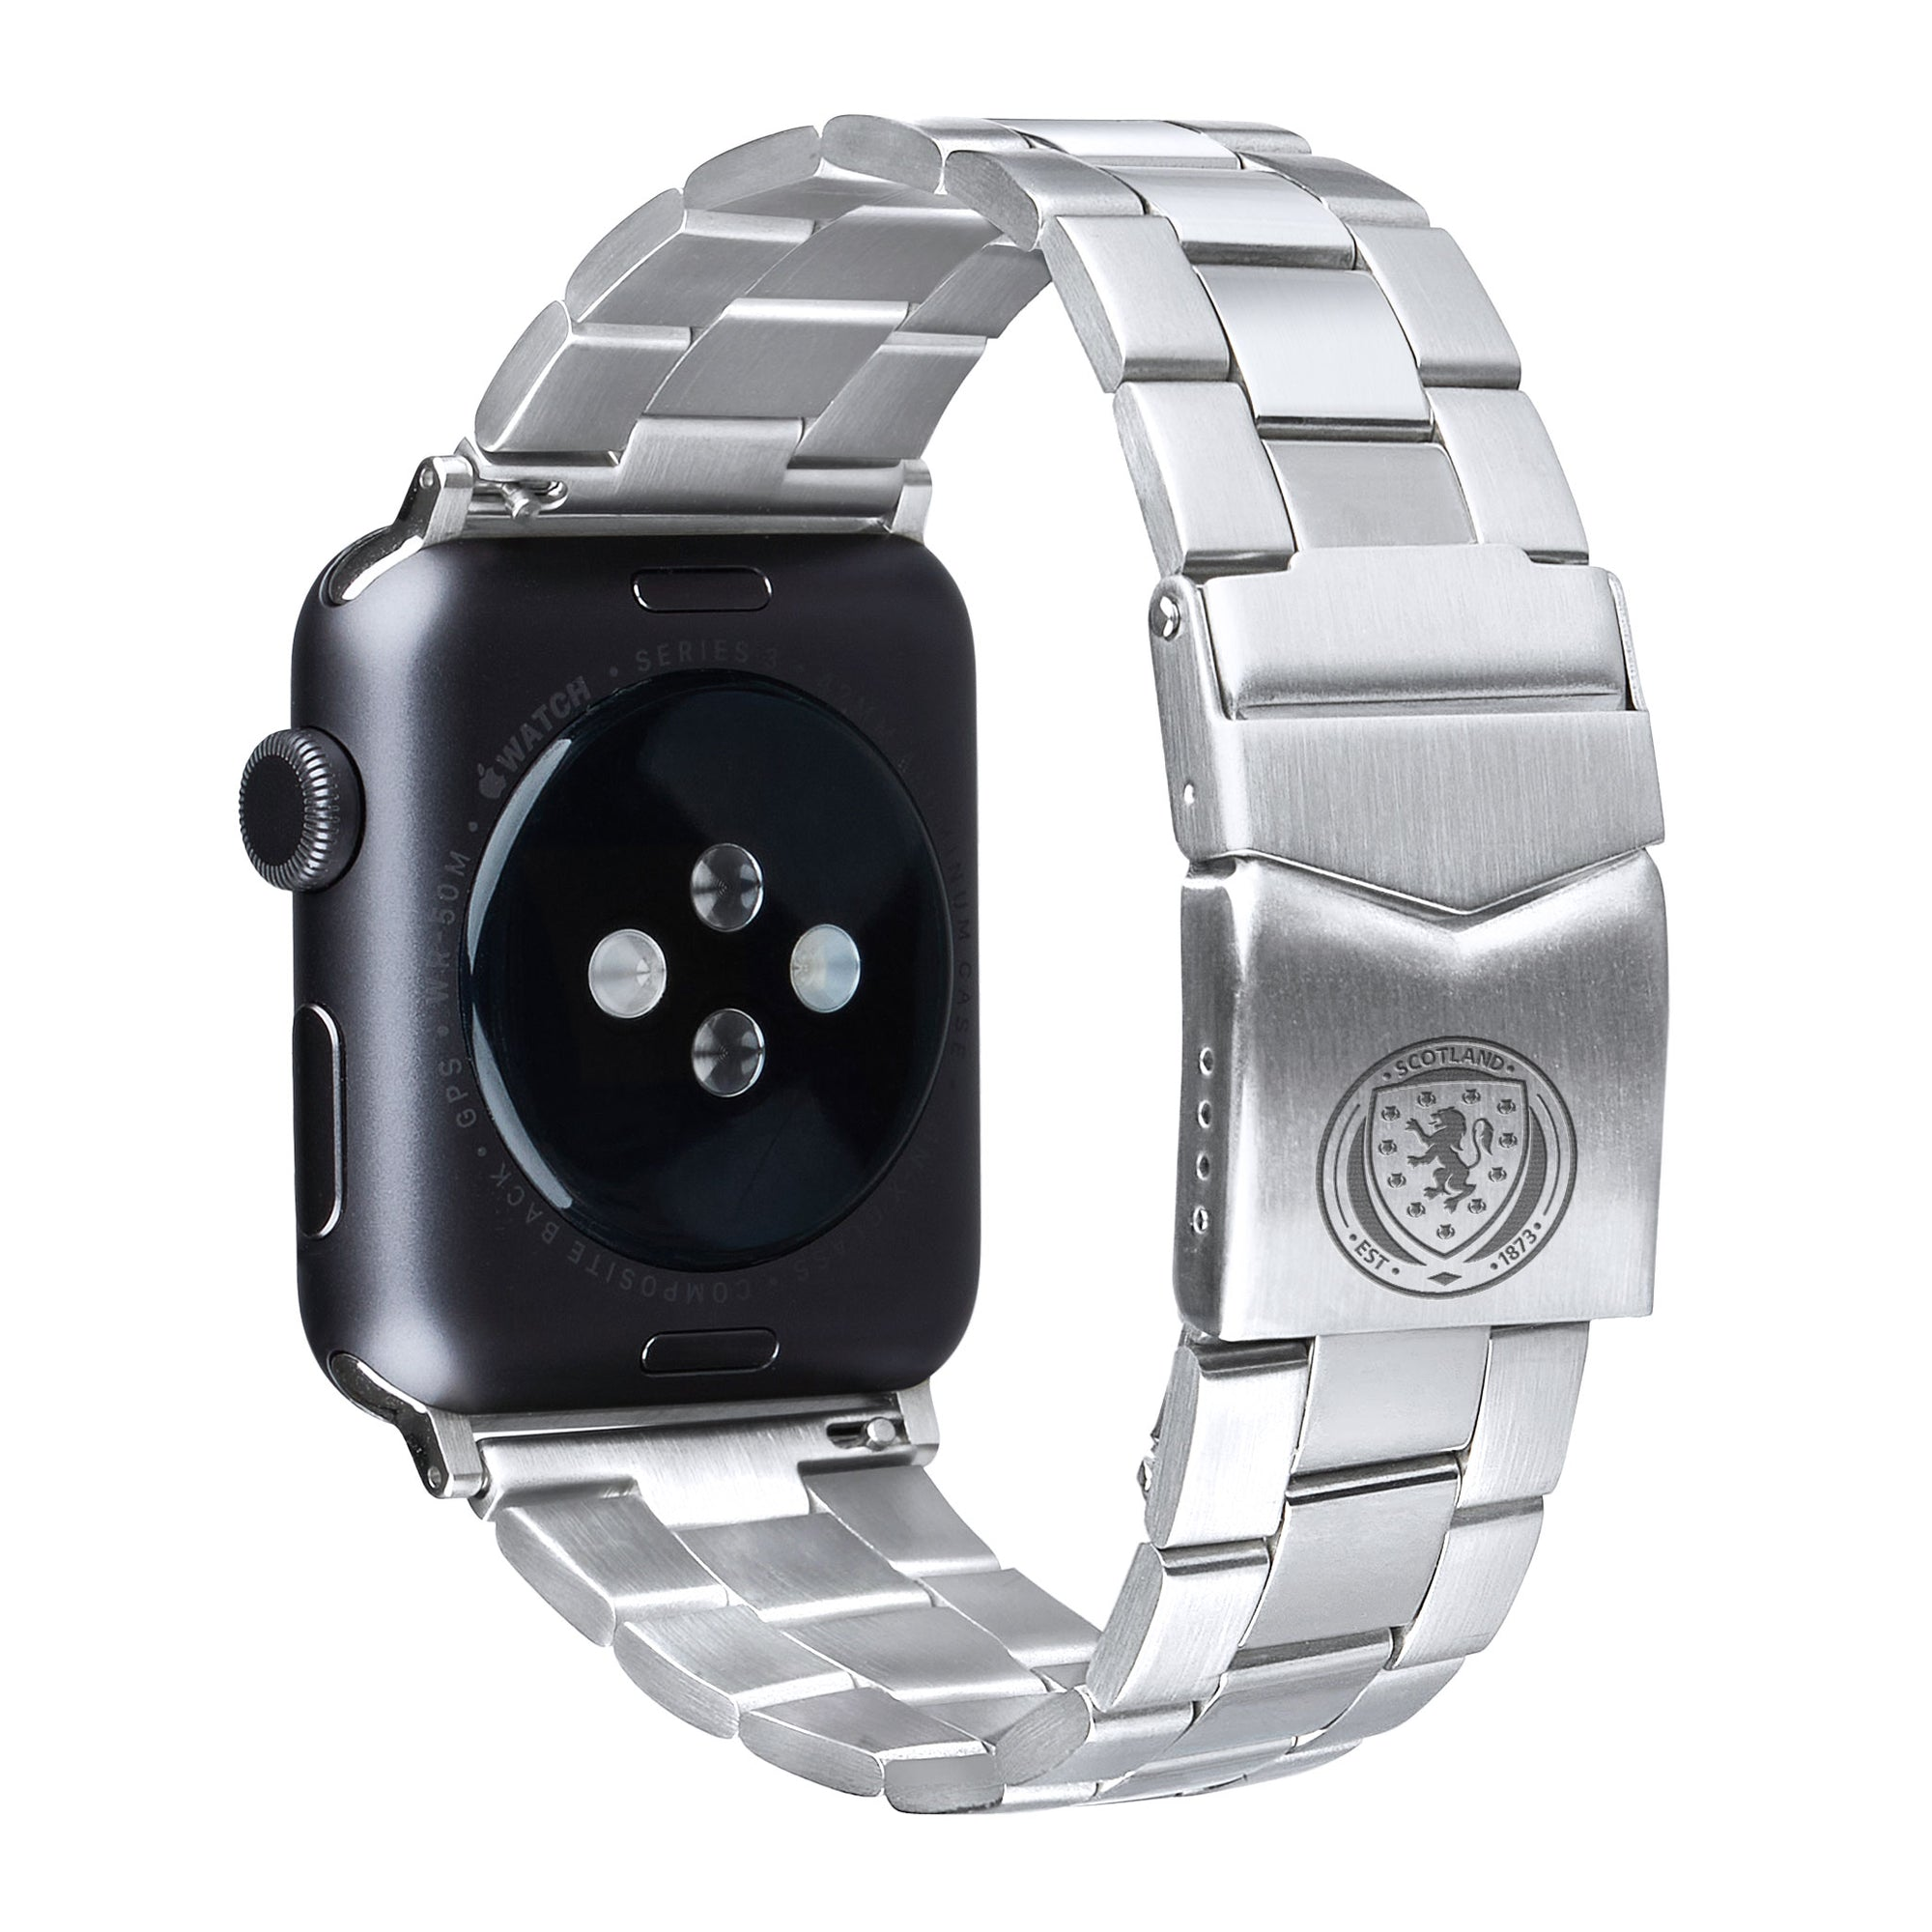 Scotland Stainless Steel Link Style Apple Watch Band - AffinityBands